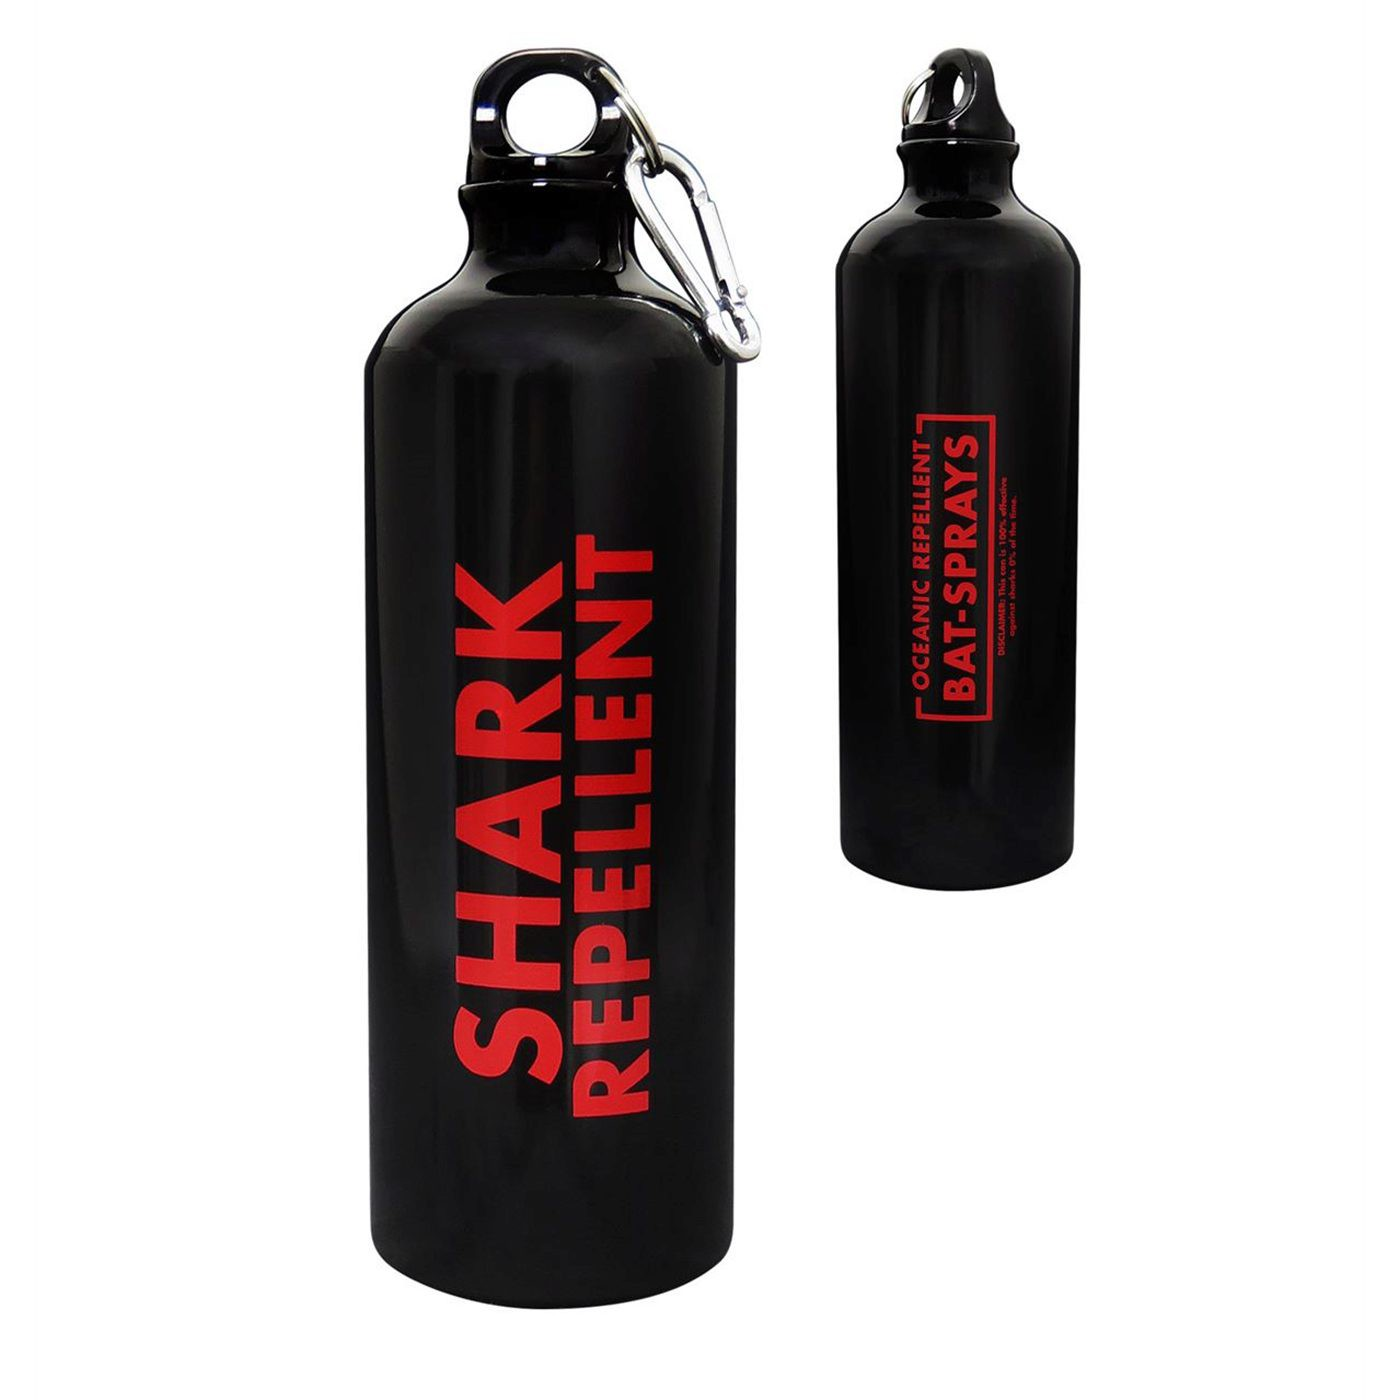 Bat-Shark Repellent 26oz Aluminum Sport Bottle